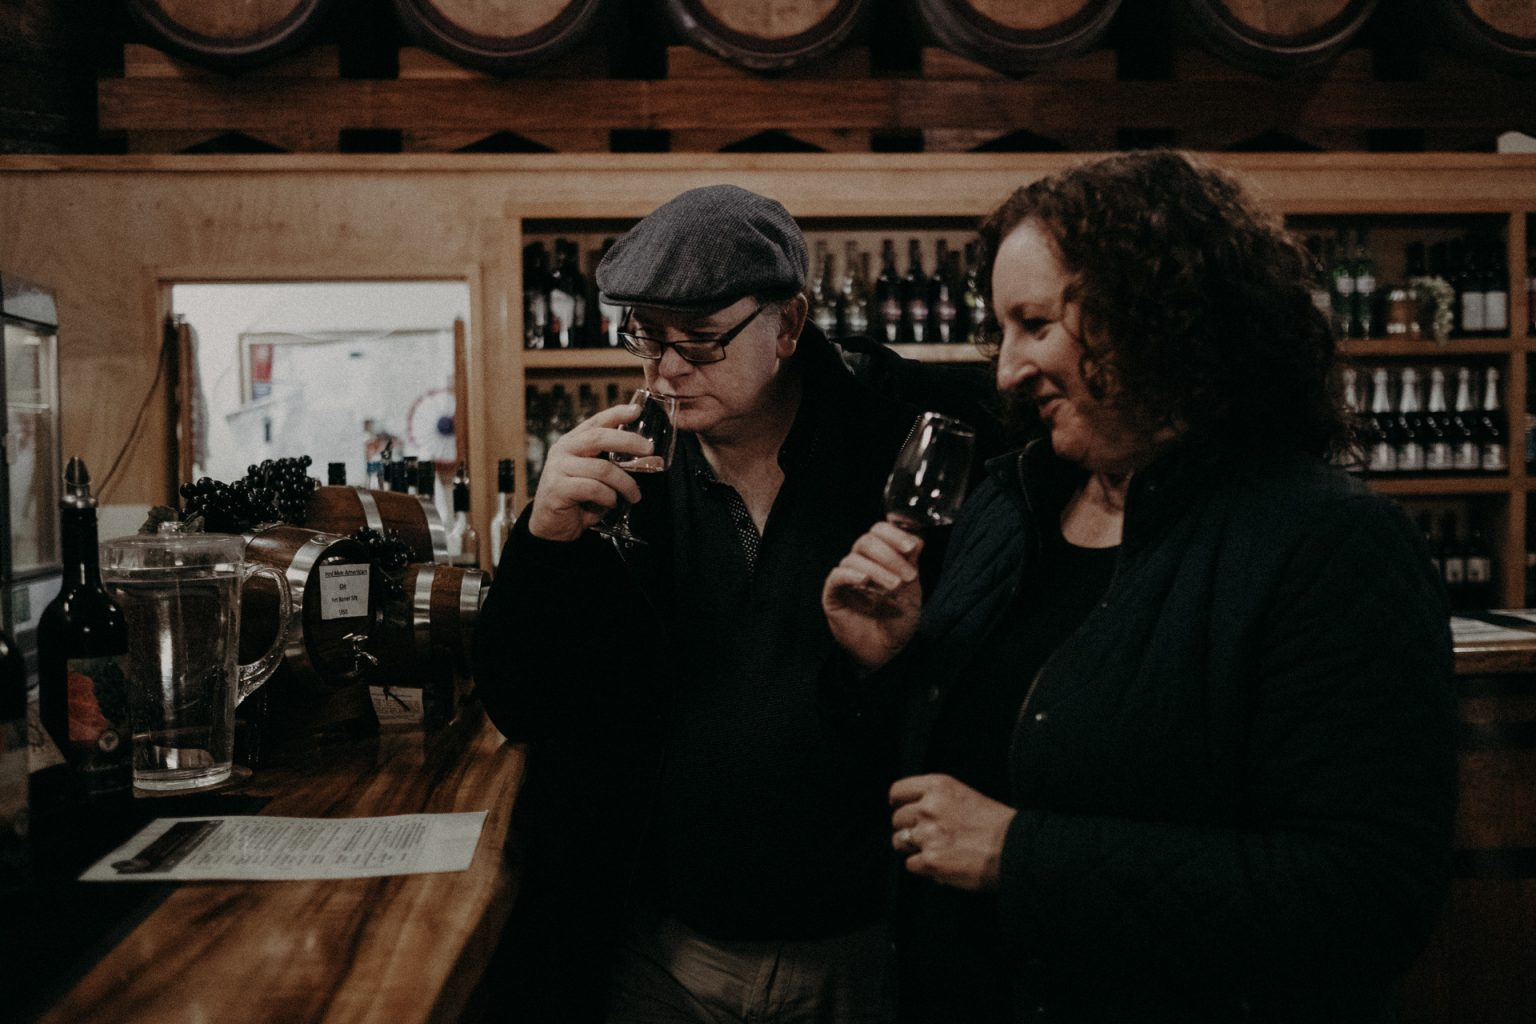 Man and woman tasting wine at mount tamborine